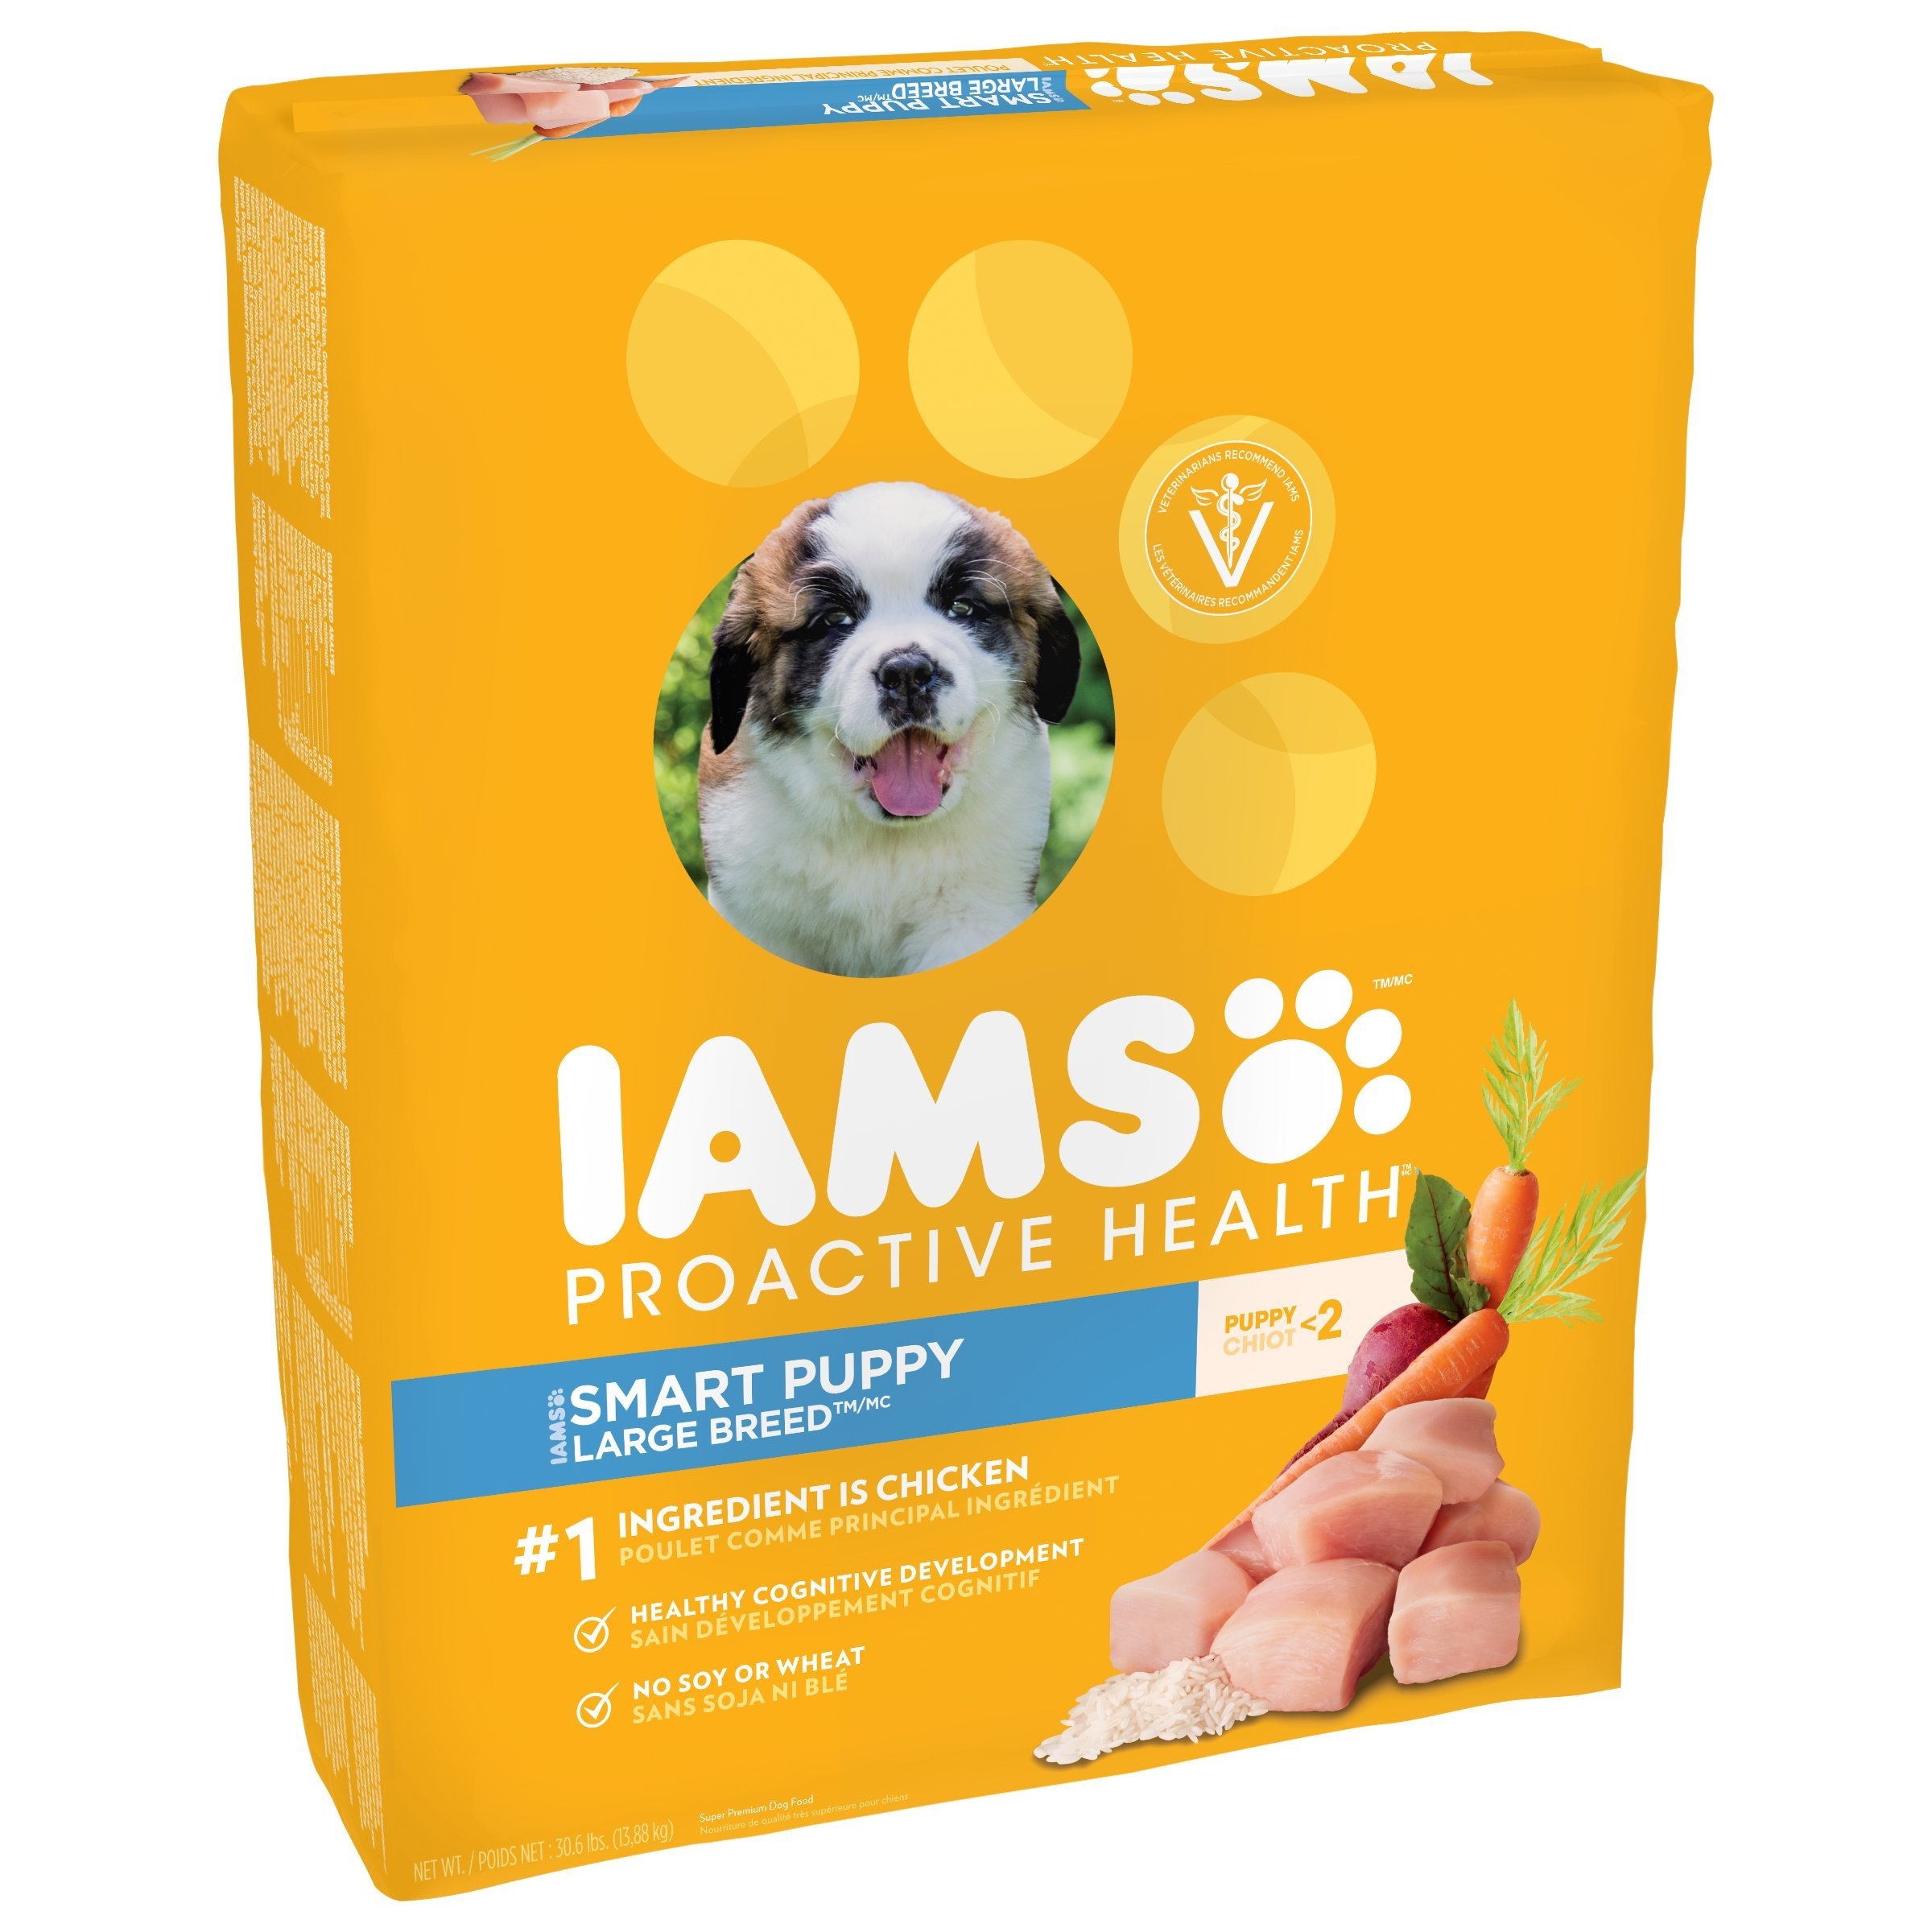 IAMS PROACTIVE HEALTH Smart Puppy Large Breed Dry Puppy ...